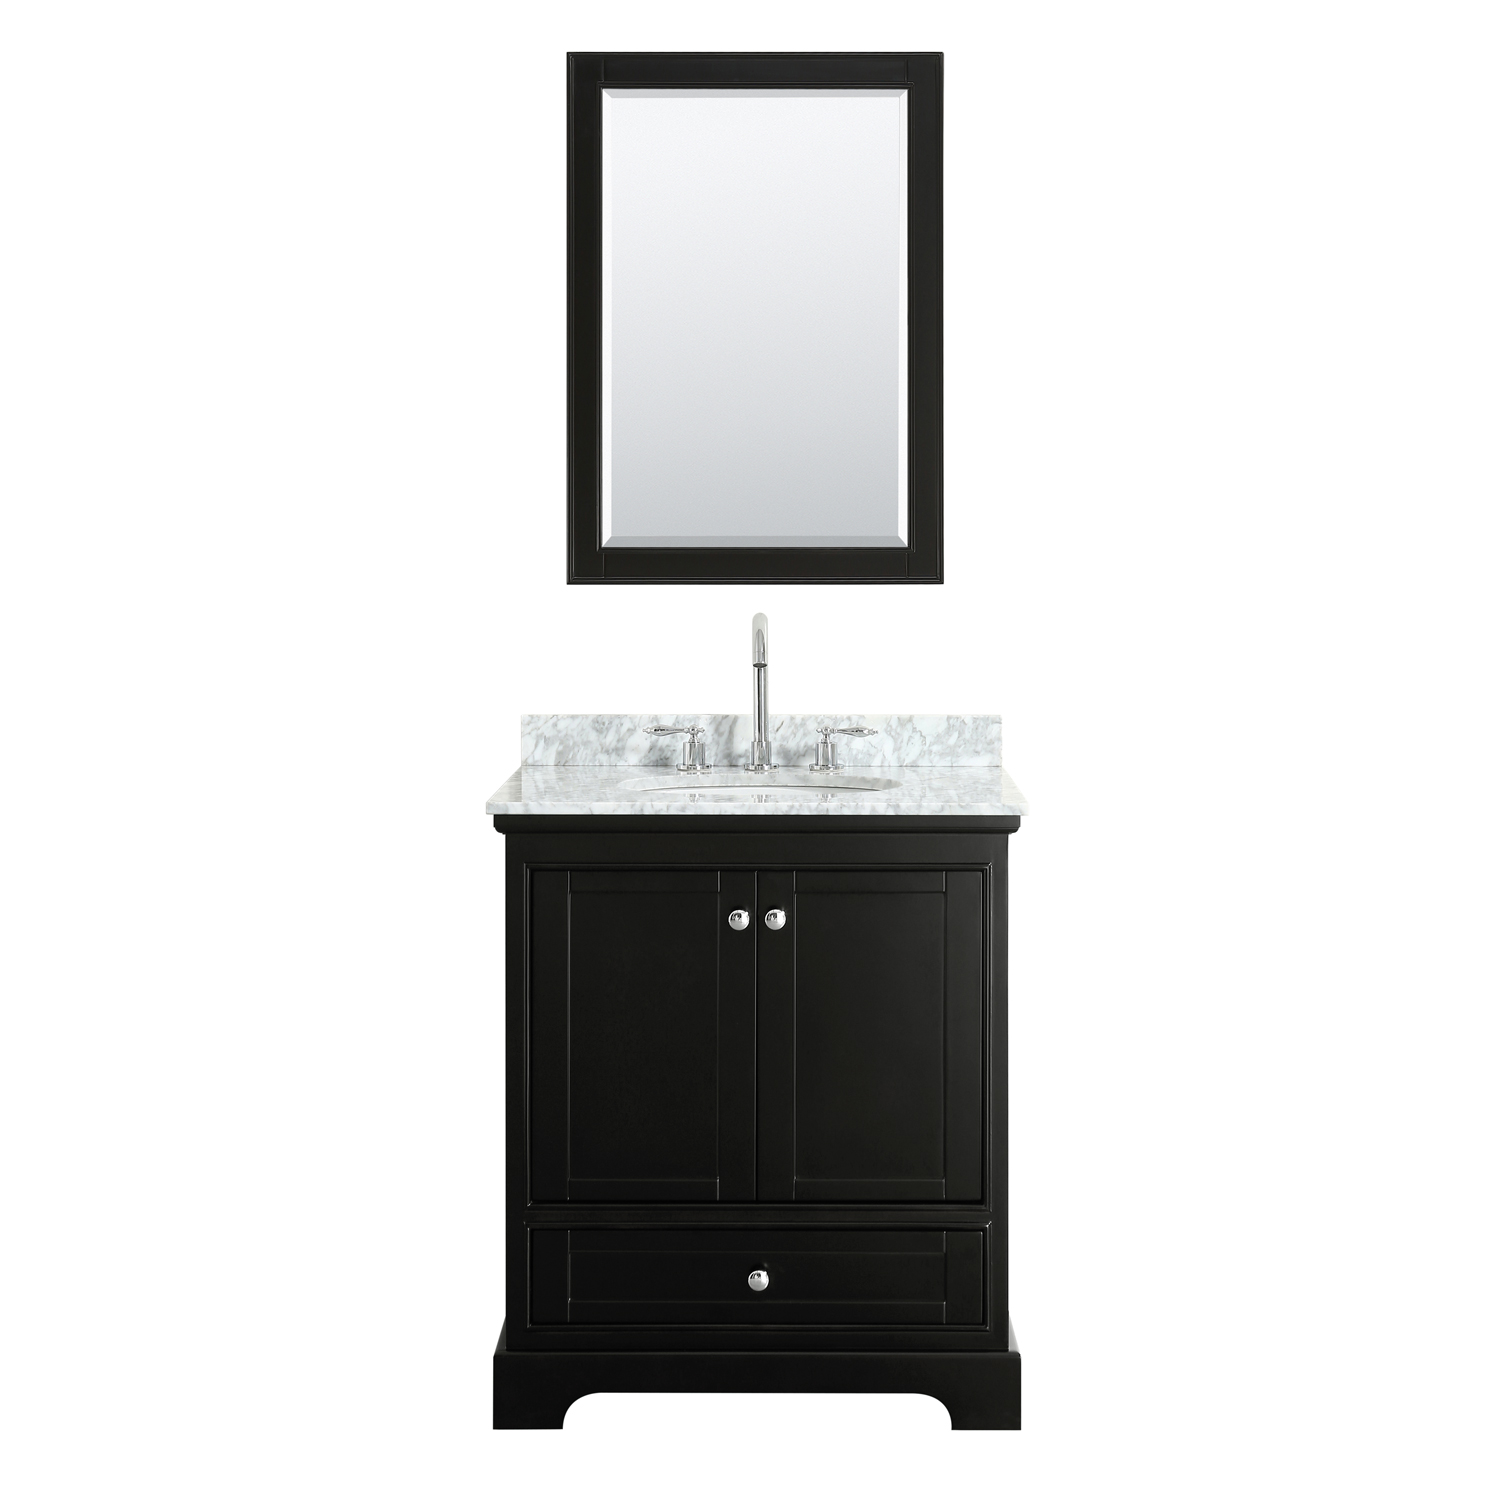 "30"" Single Bathroom Vanity in White Carrara Marble Countertop with Undermount Porcelain Sink, Medicine Cabinet, Mirror and Color Options"